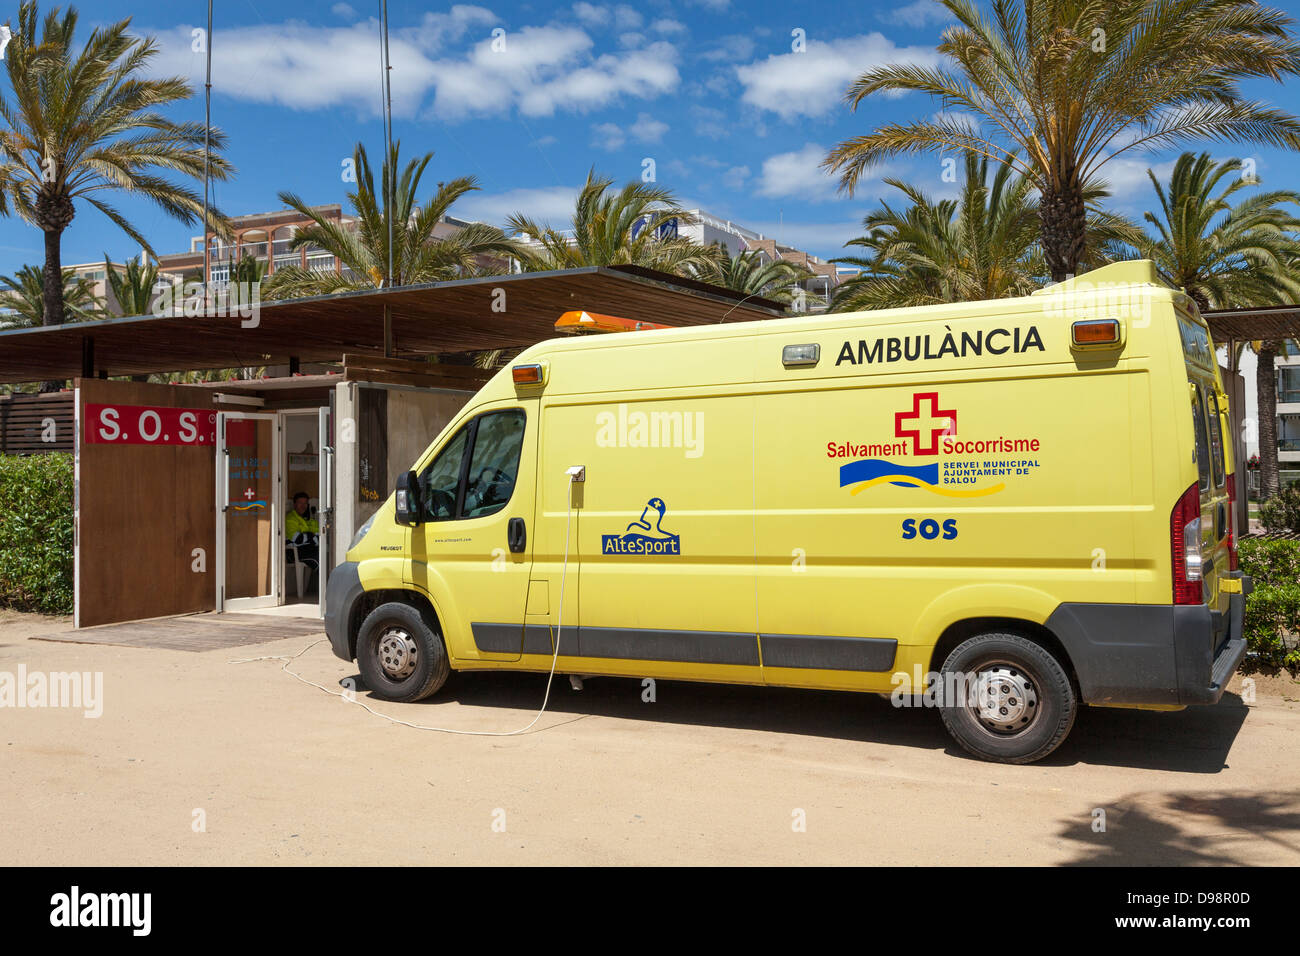 Ambulancia plugged into mains by promenade SOS station in Spain - Stock Image